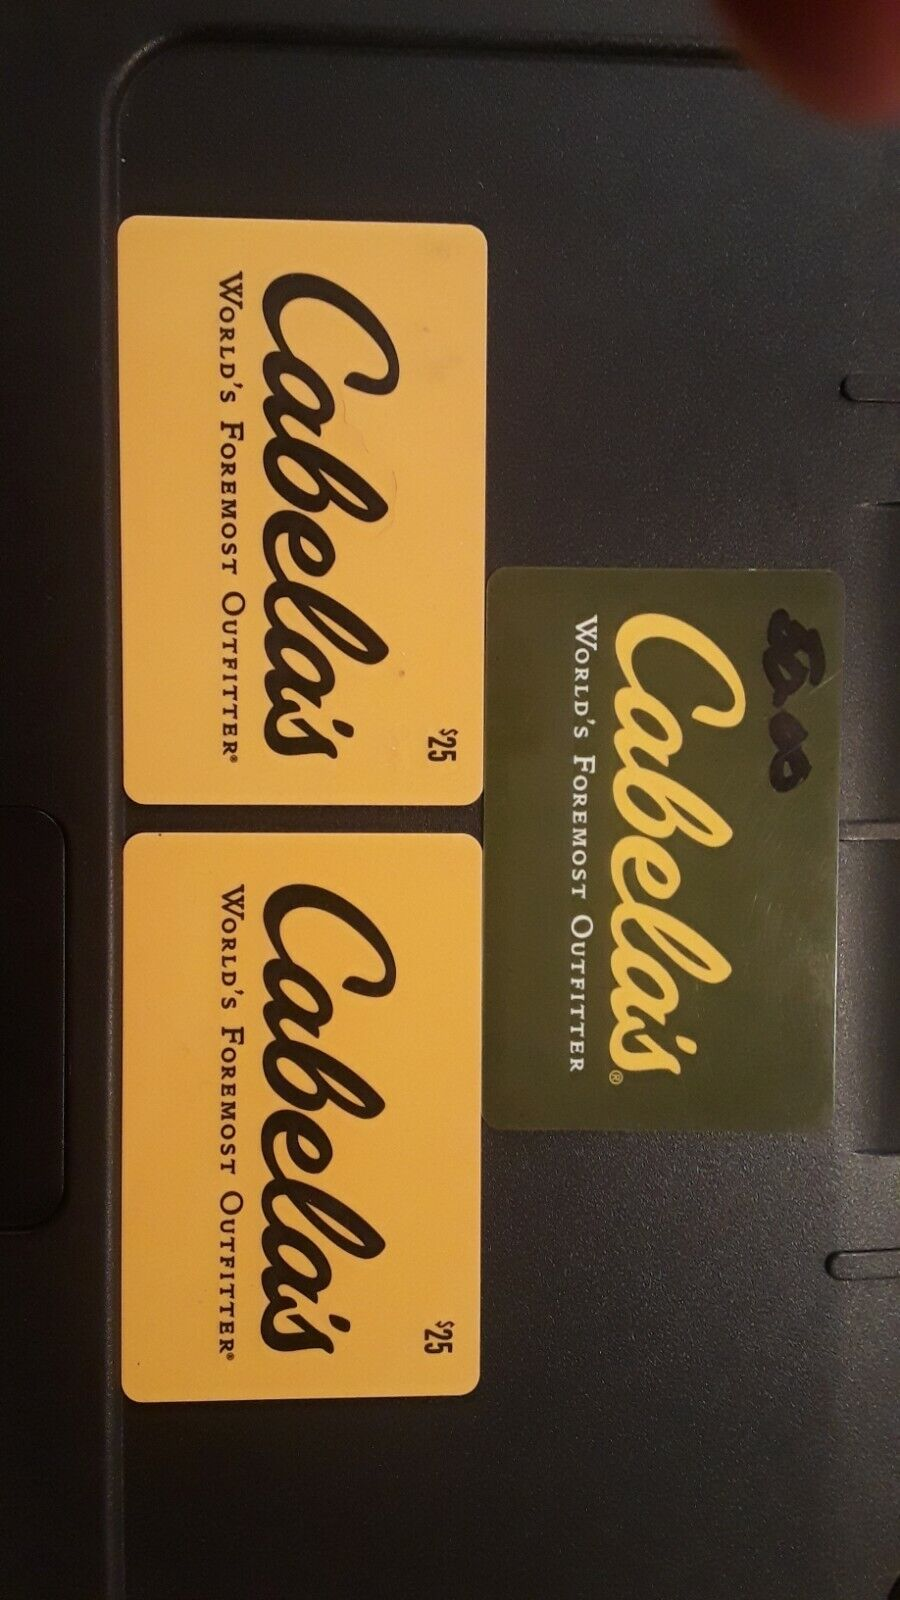 Cabelas Gift Cards - $93.00